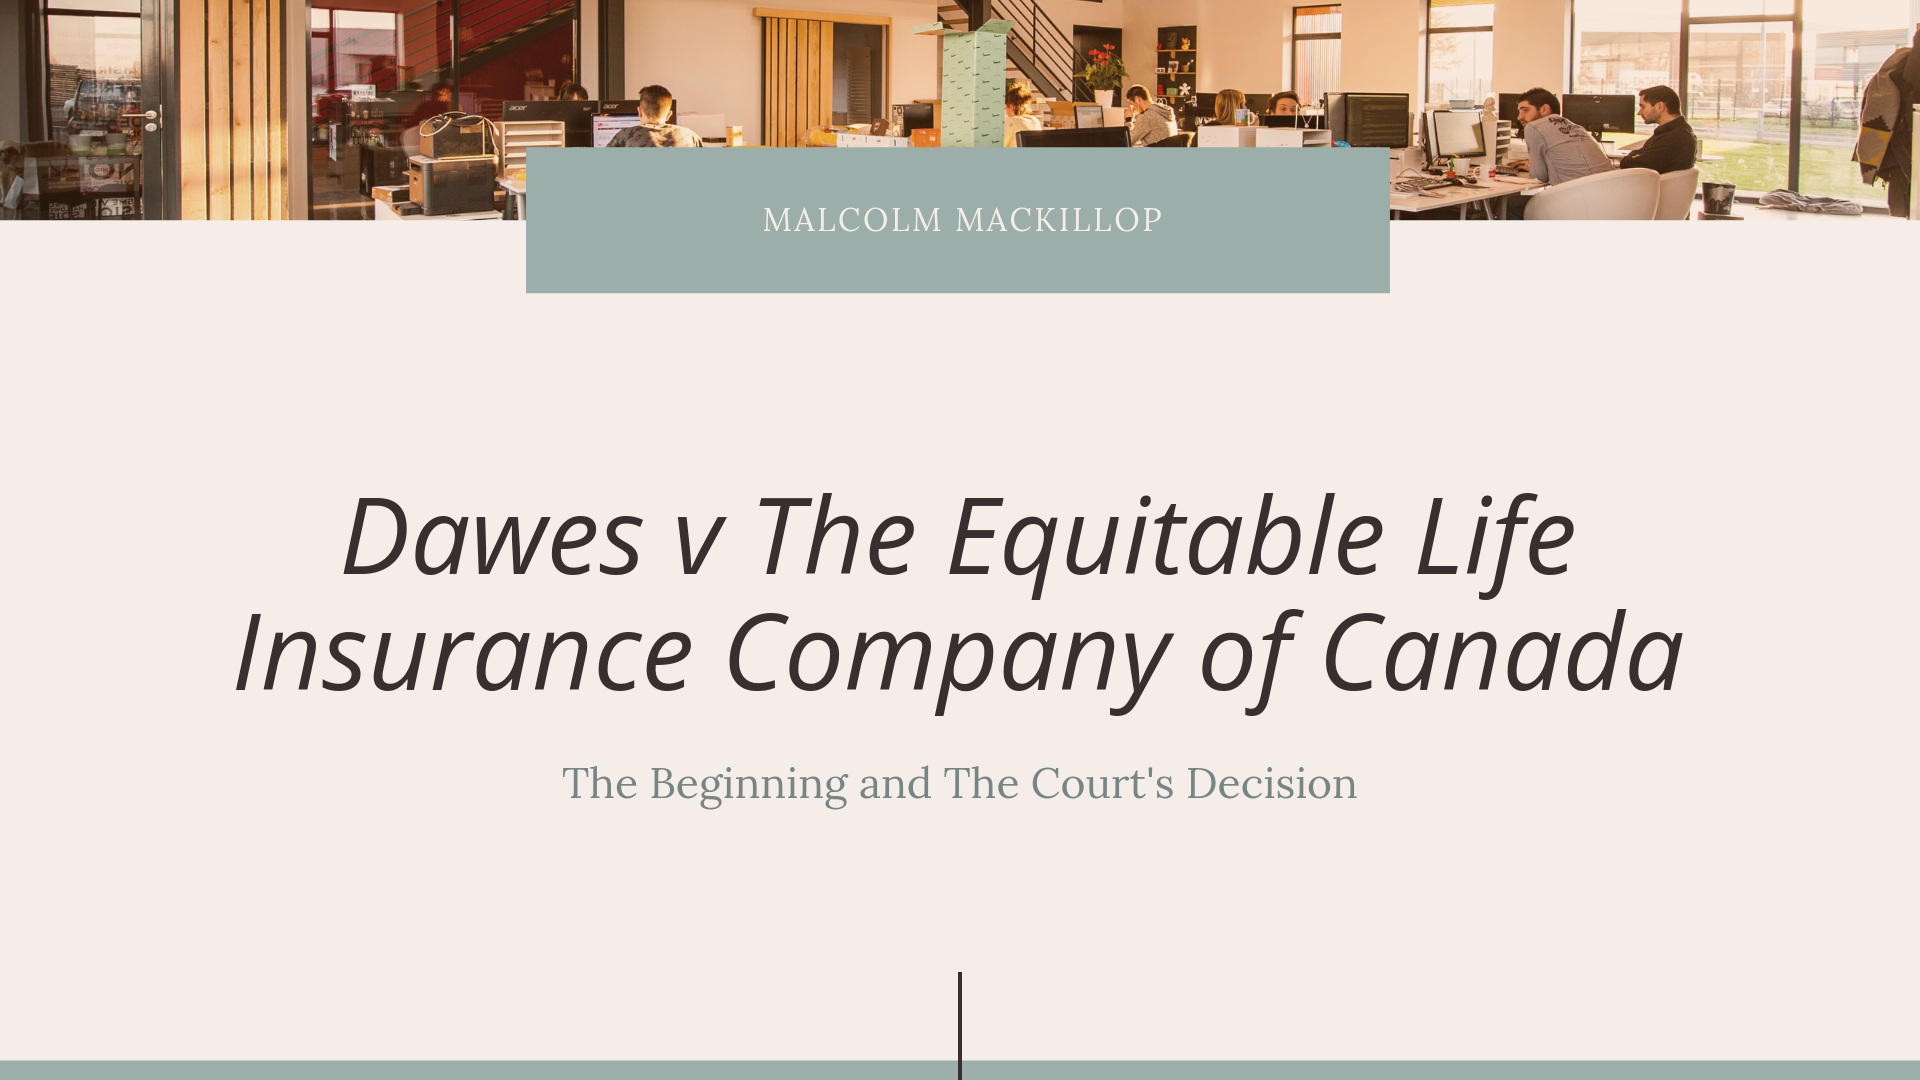 In The First Part Of Malcolm Mackillop S Presentation On Dawes V